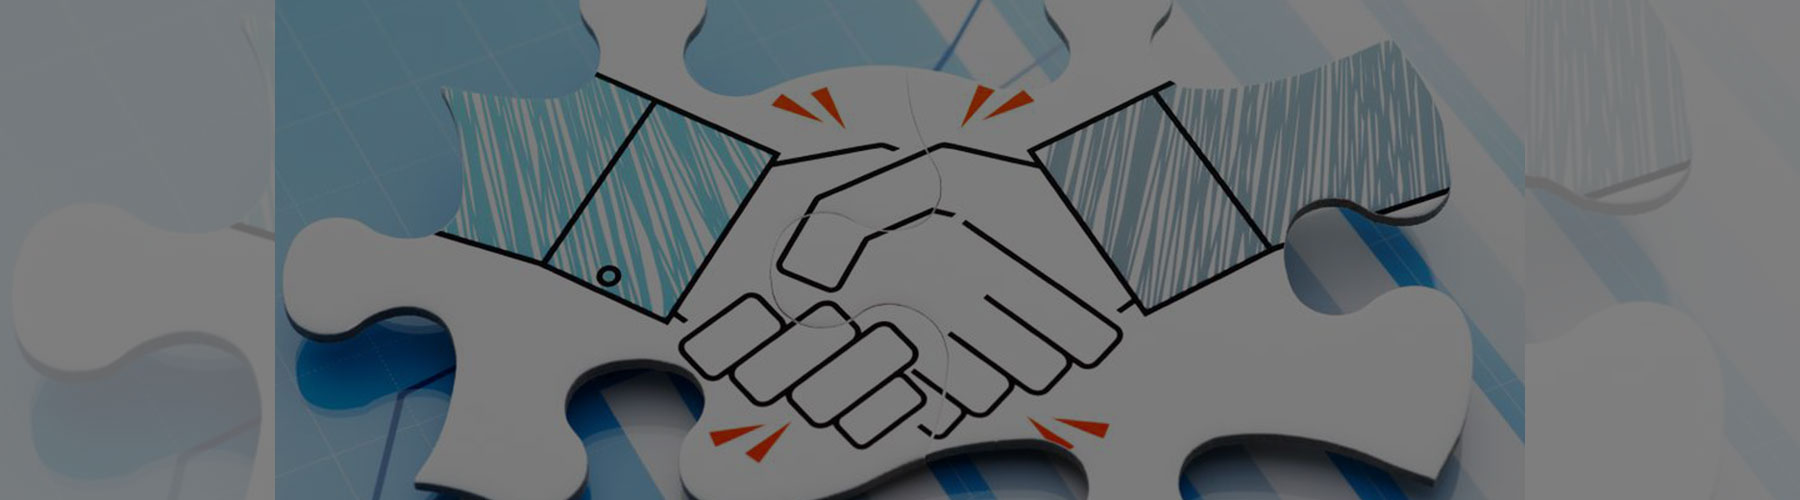 partnerships-and-collaborations-page-banner-csrminda